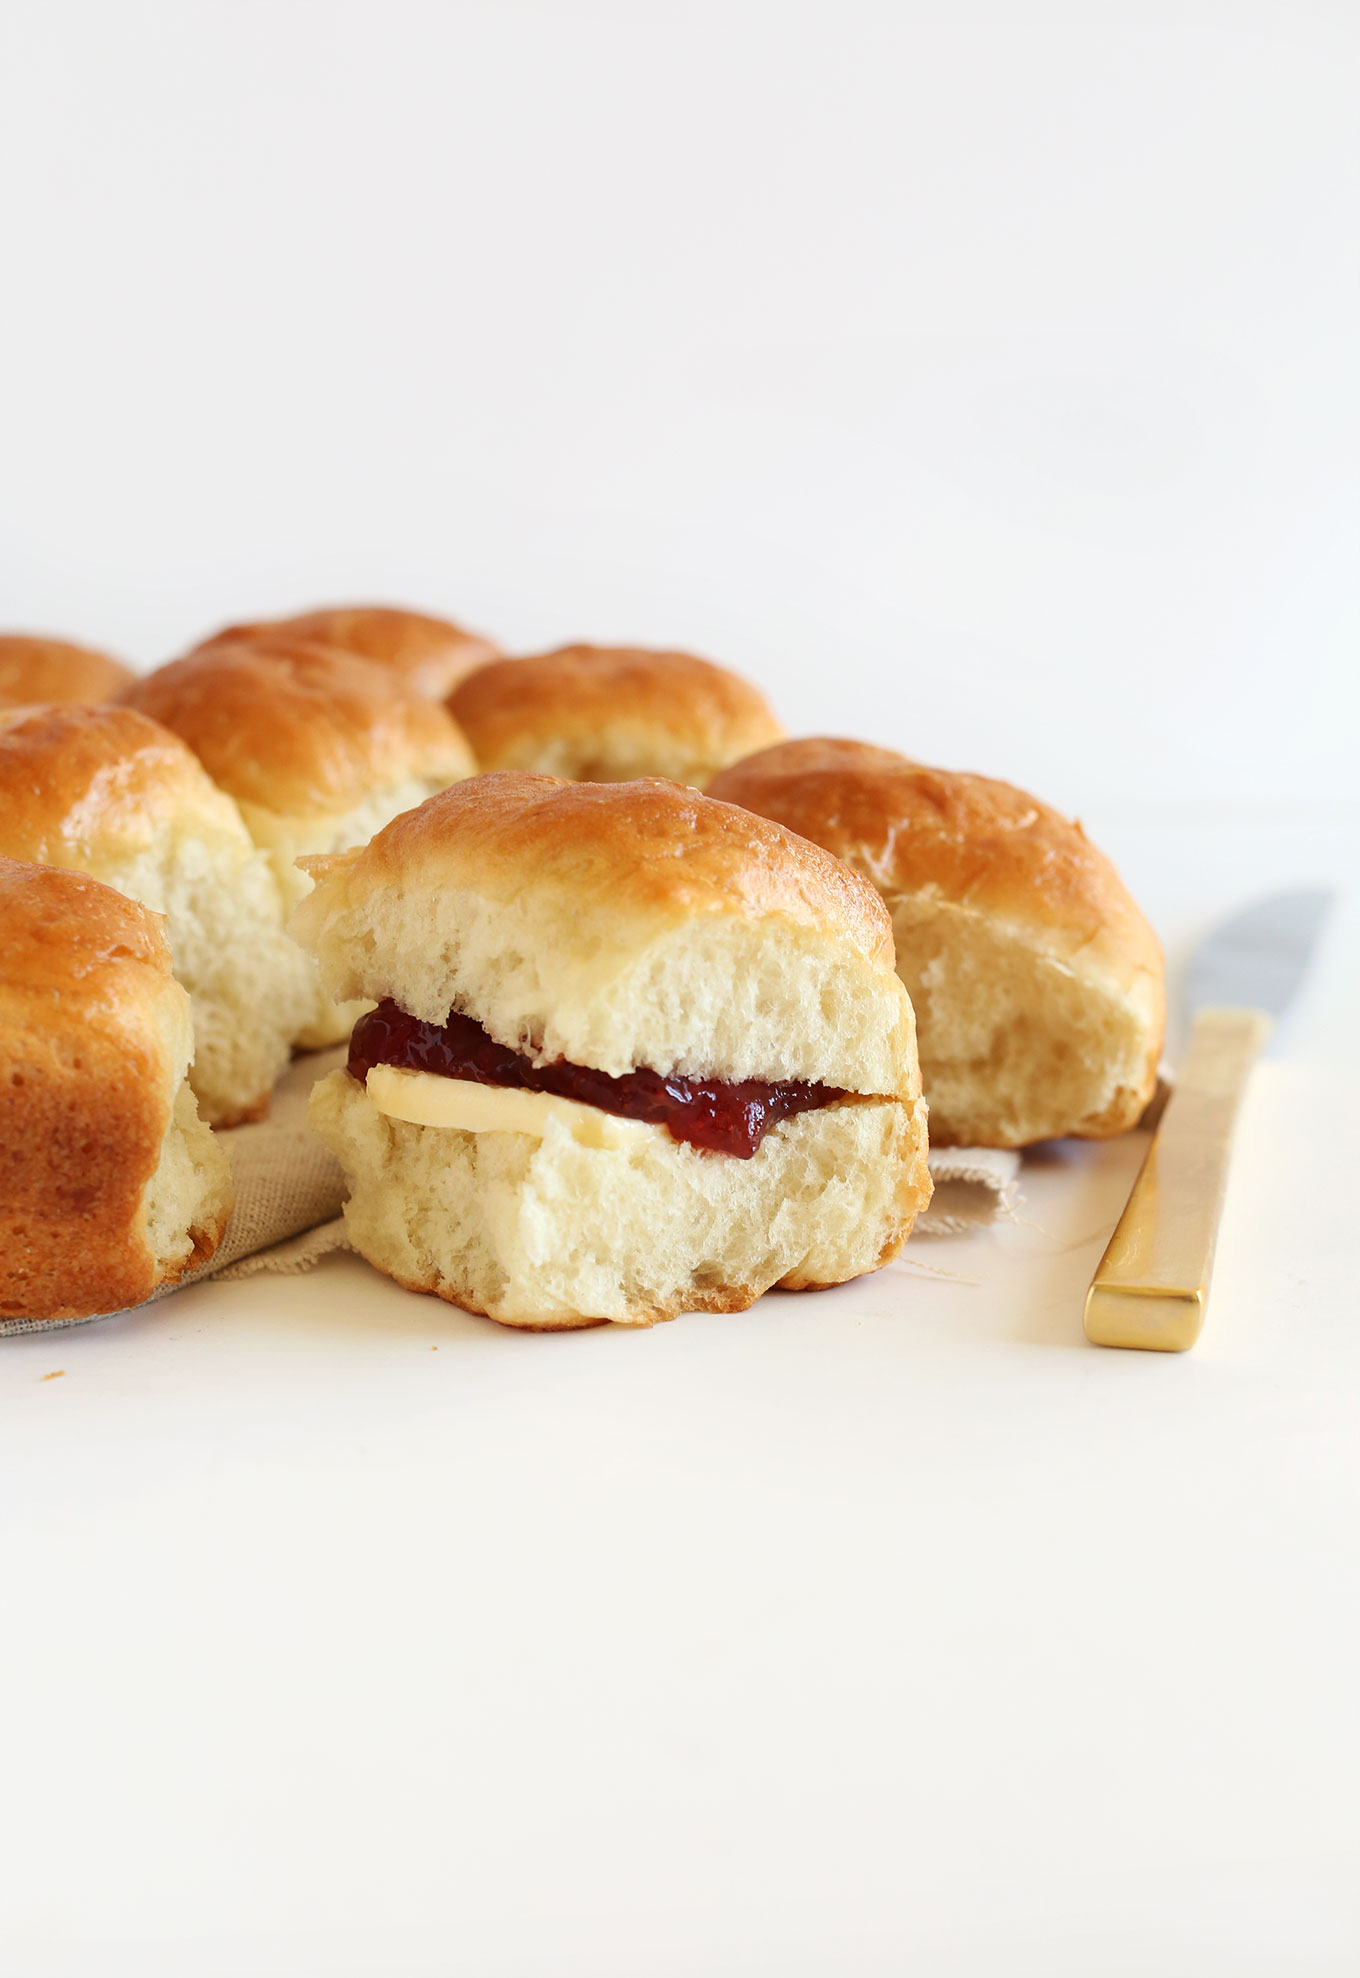 Freshly baked vegan dinner rolls filled with jam and vegan butter